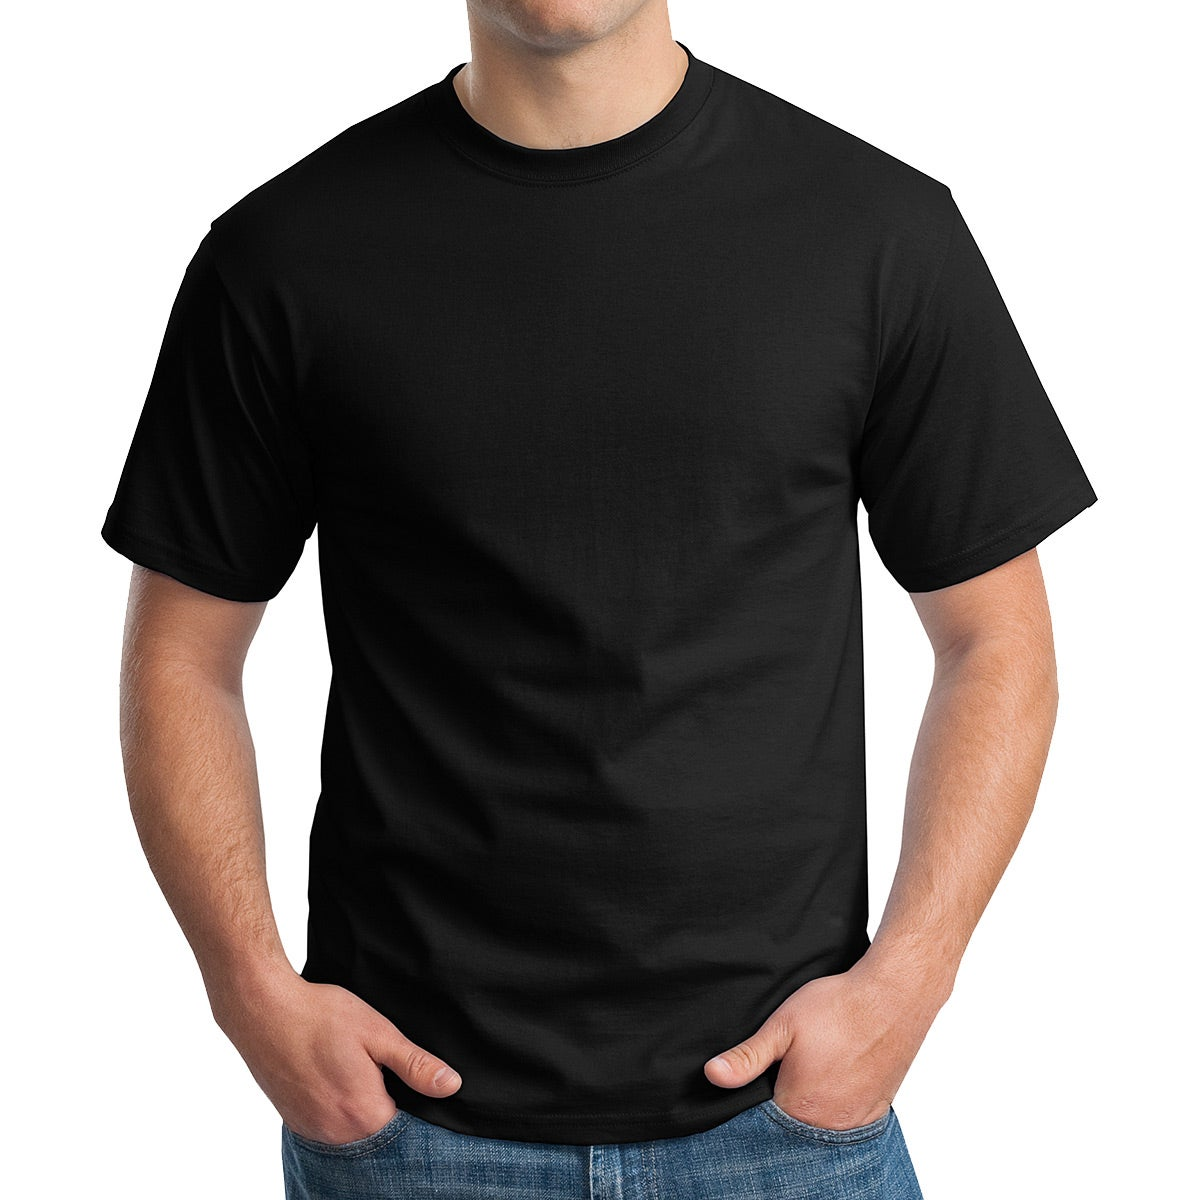 Hanes Tagless 100% Cotton T-Shirt (Colors)